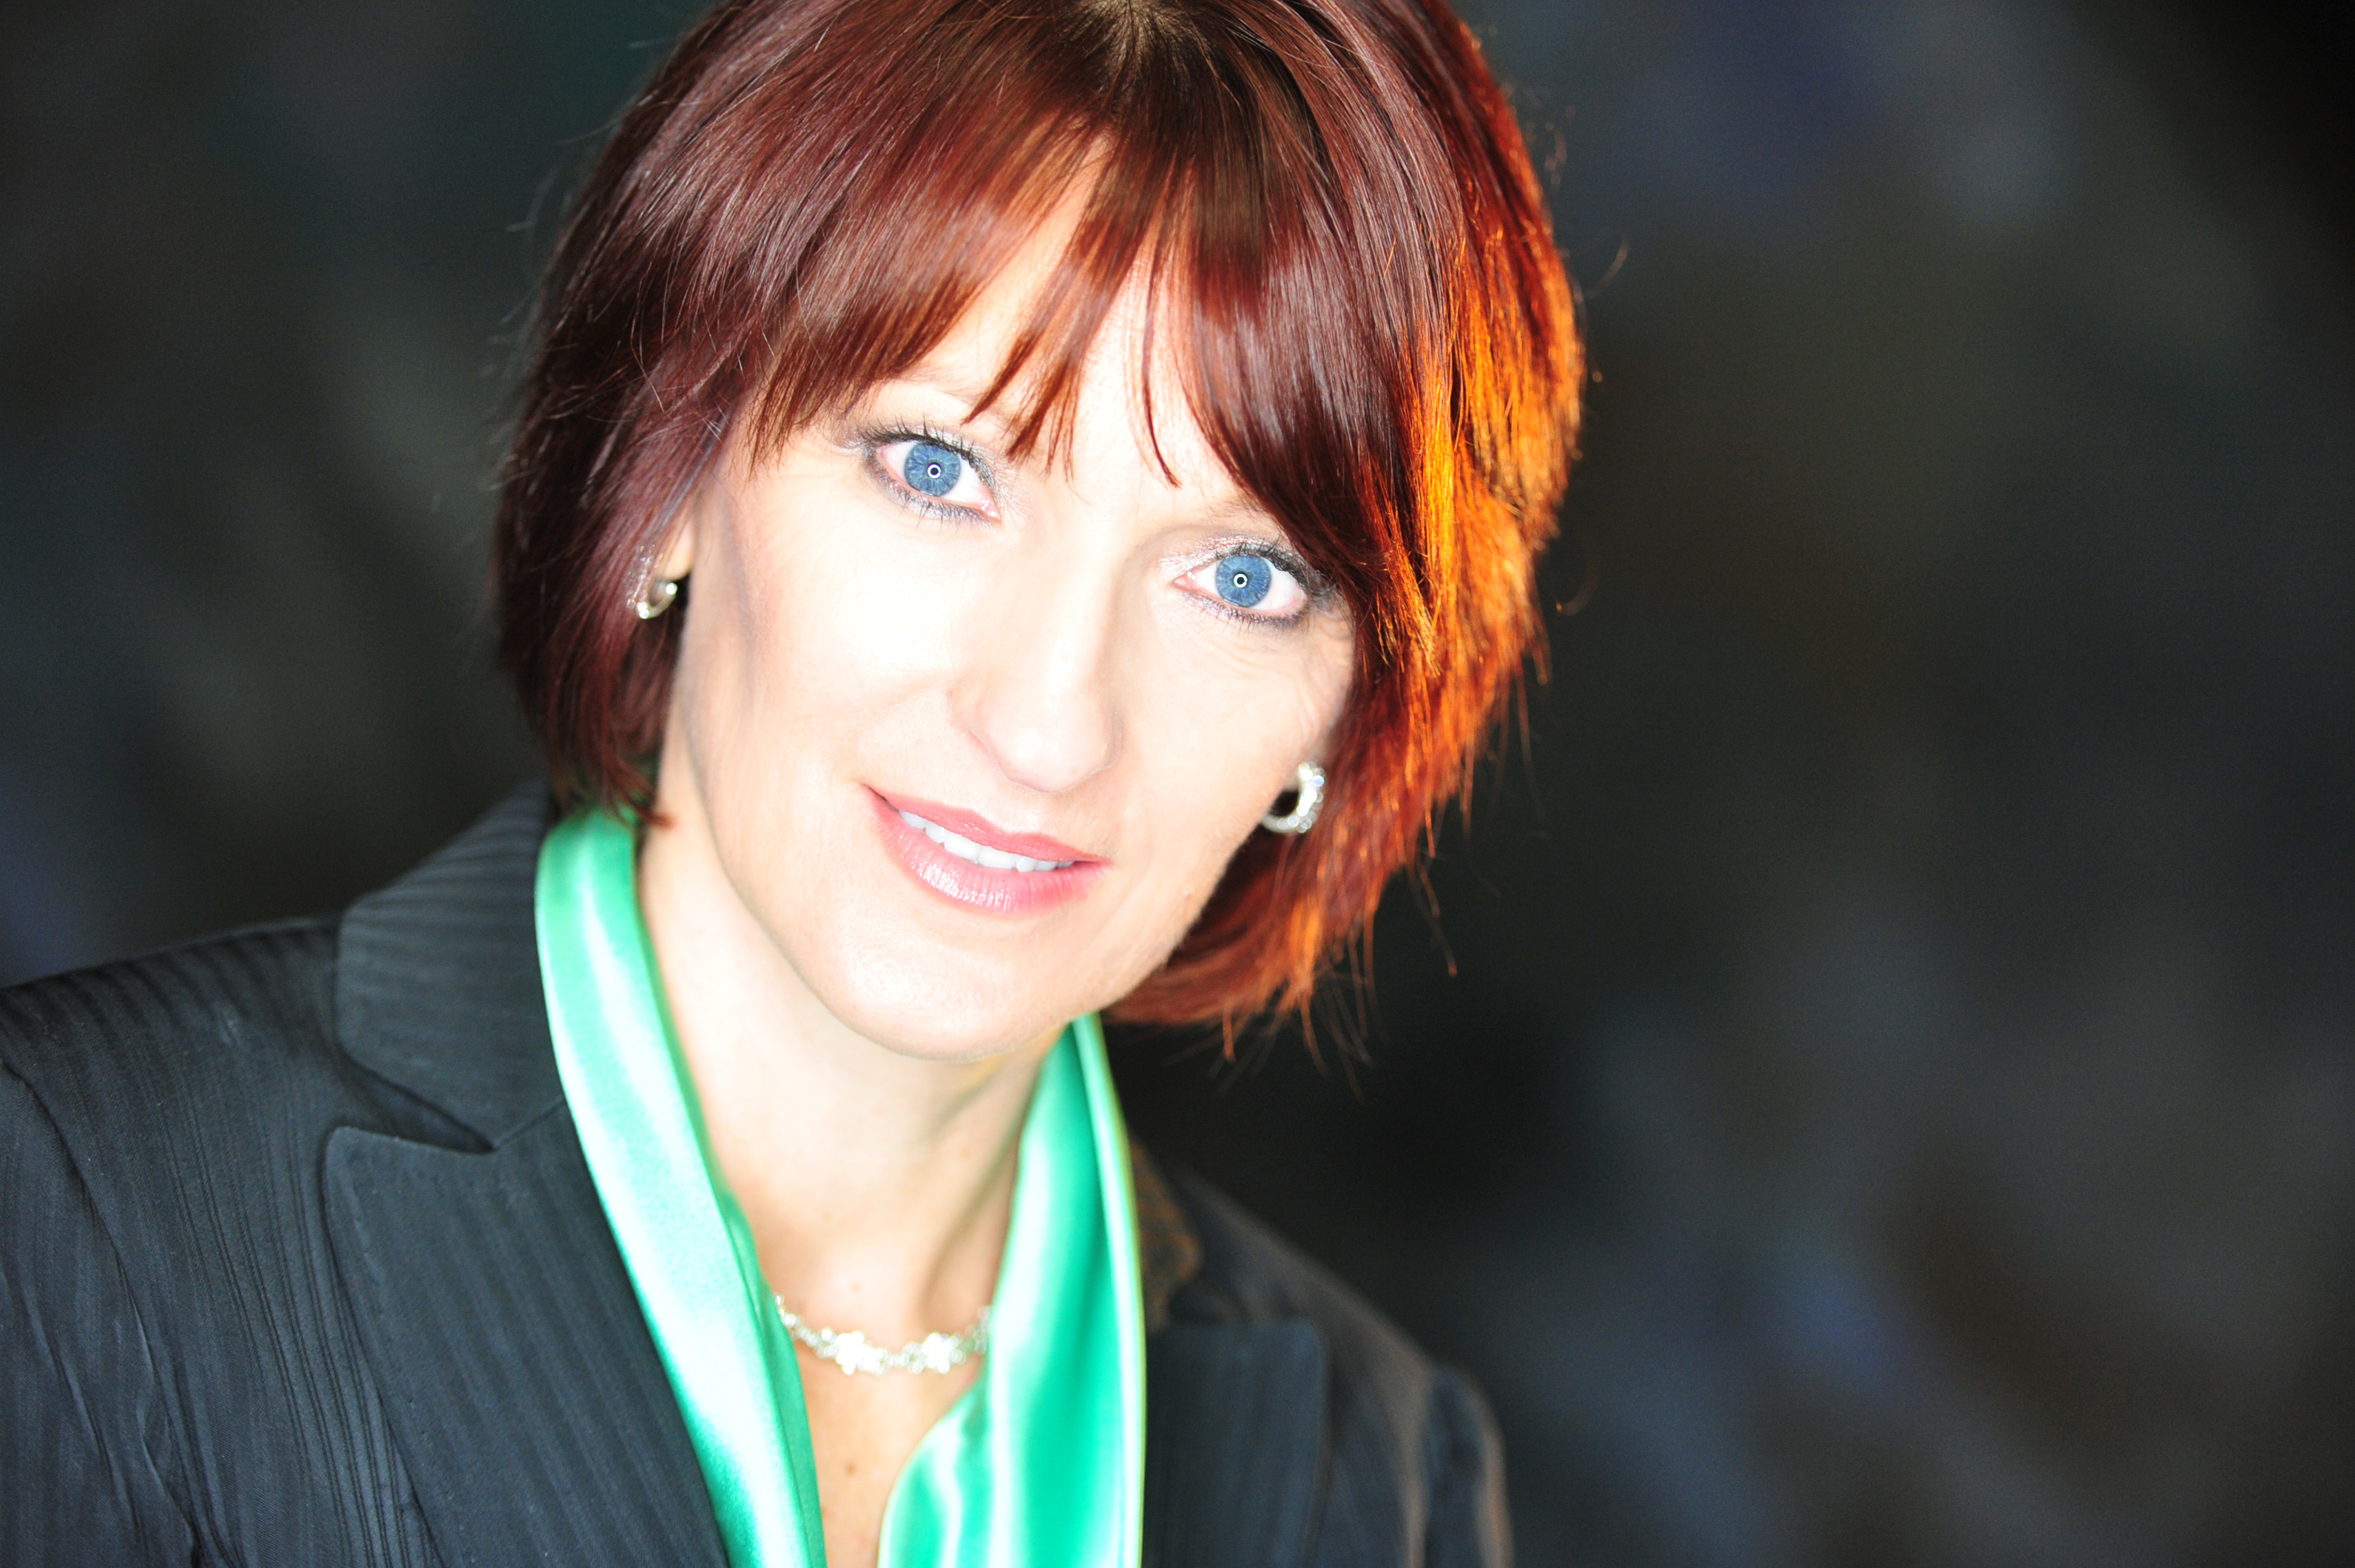 Rose Schoy, CPA - Founder